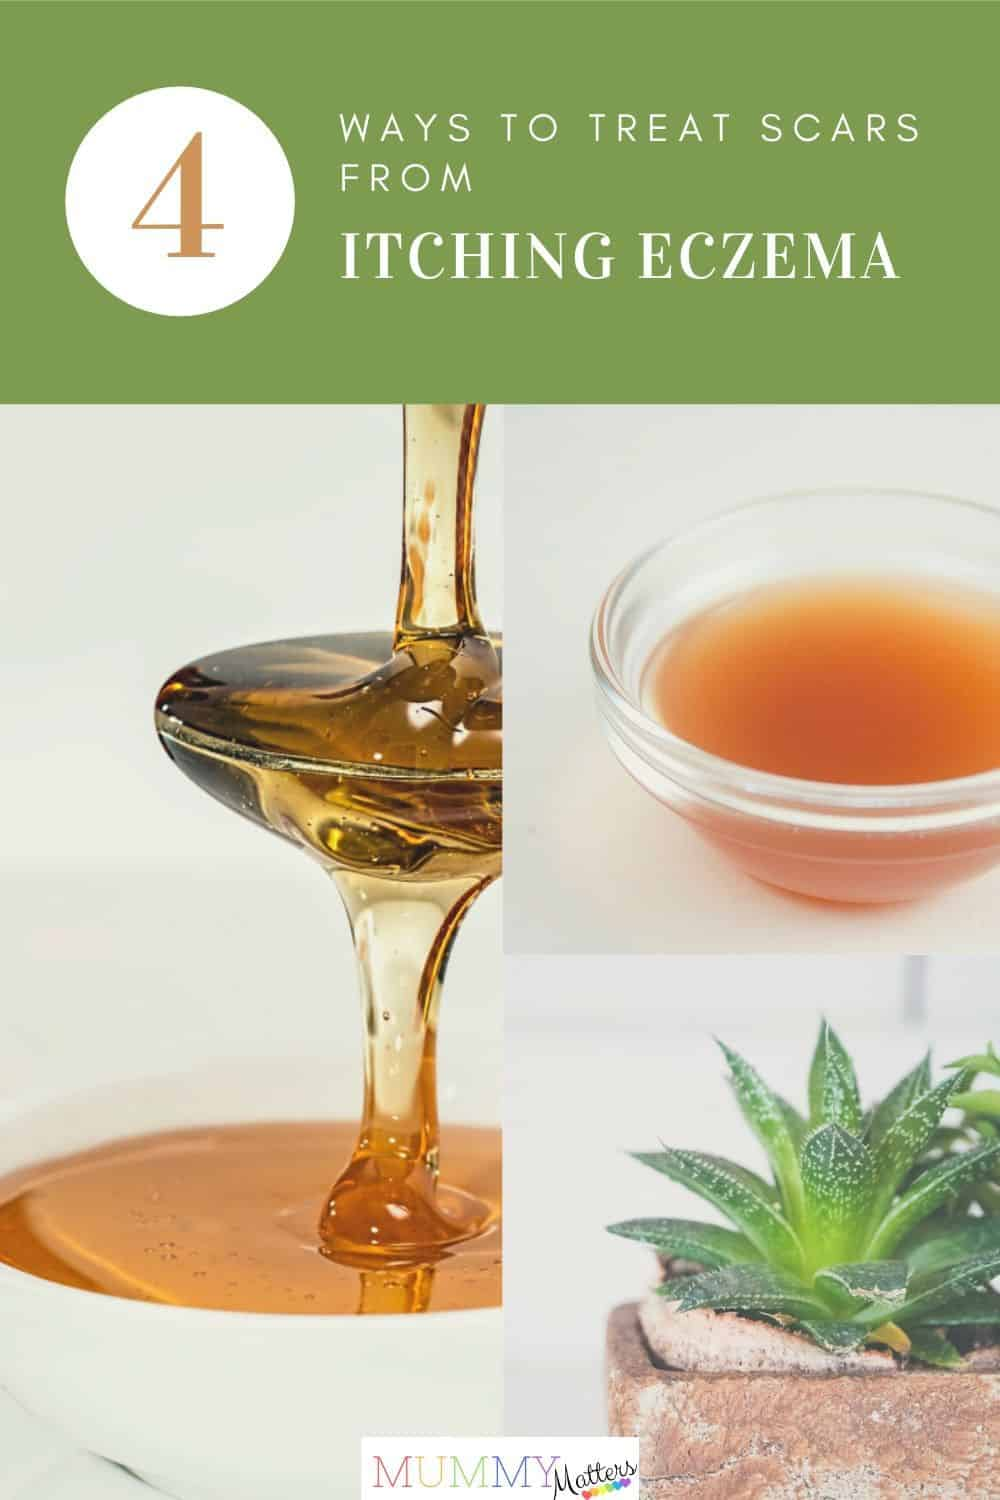 Eczema is a condition of the skin that causes irritated, parched, and scaly skin. In this post, we discuss tips to treat scars from itching in a natural way.